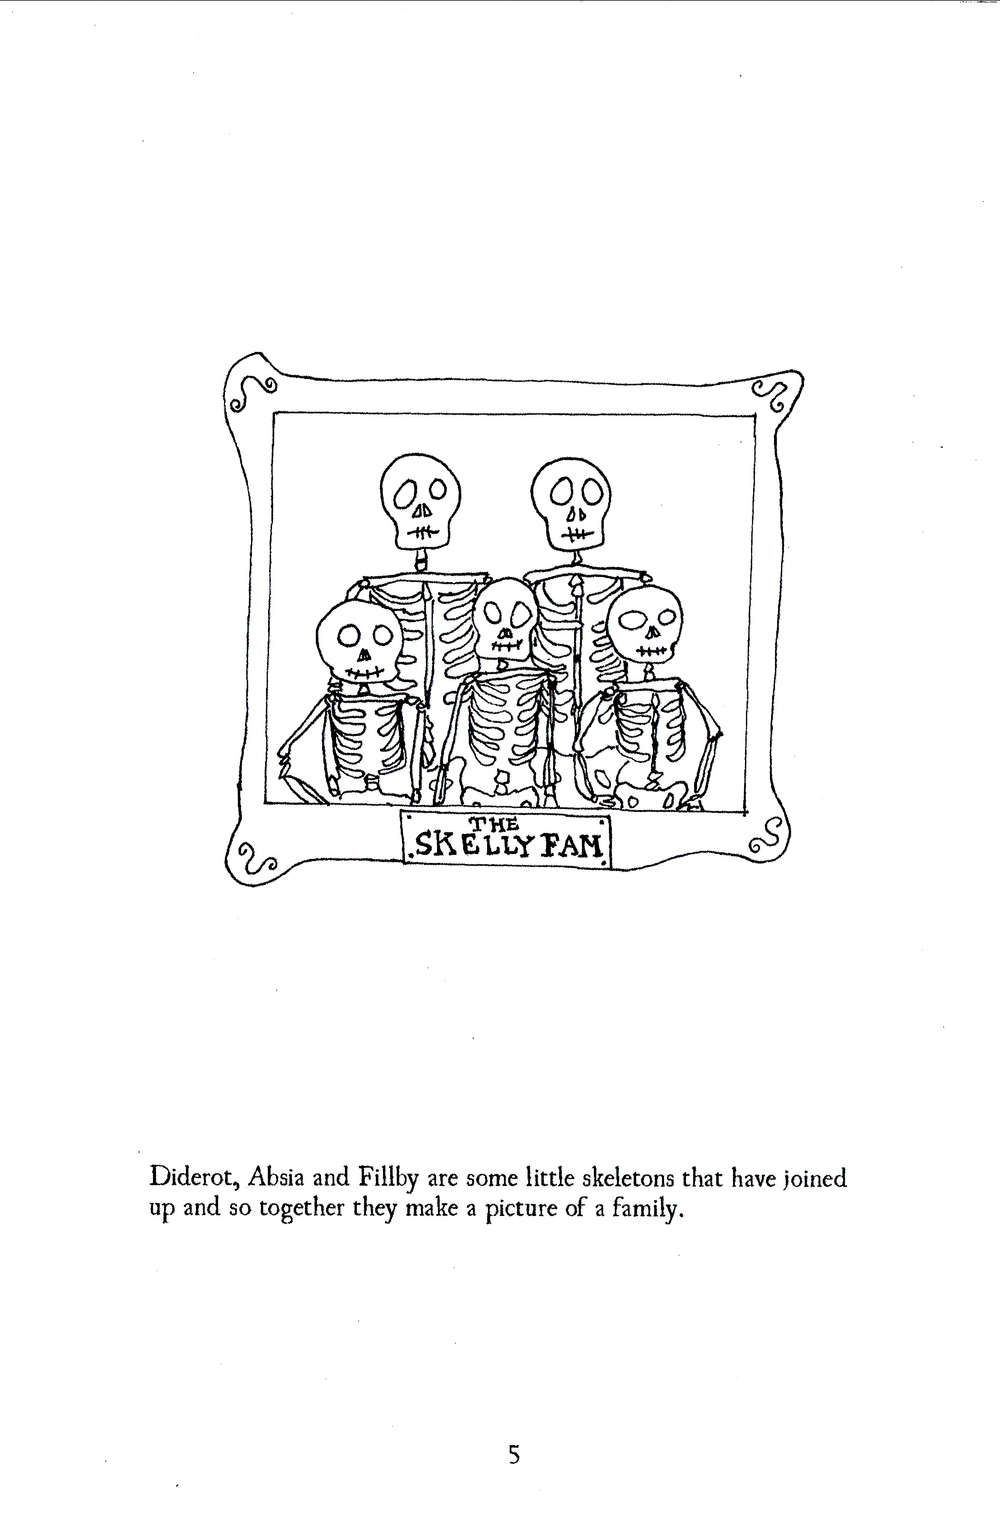 skelly fam 5 for website.jpg